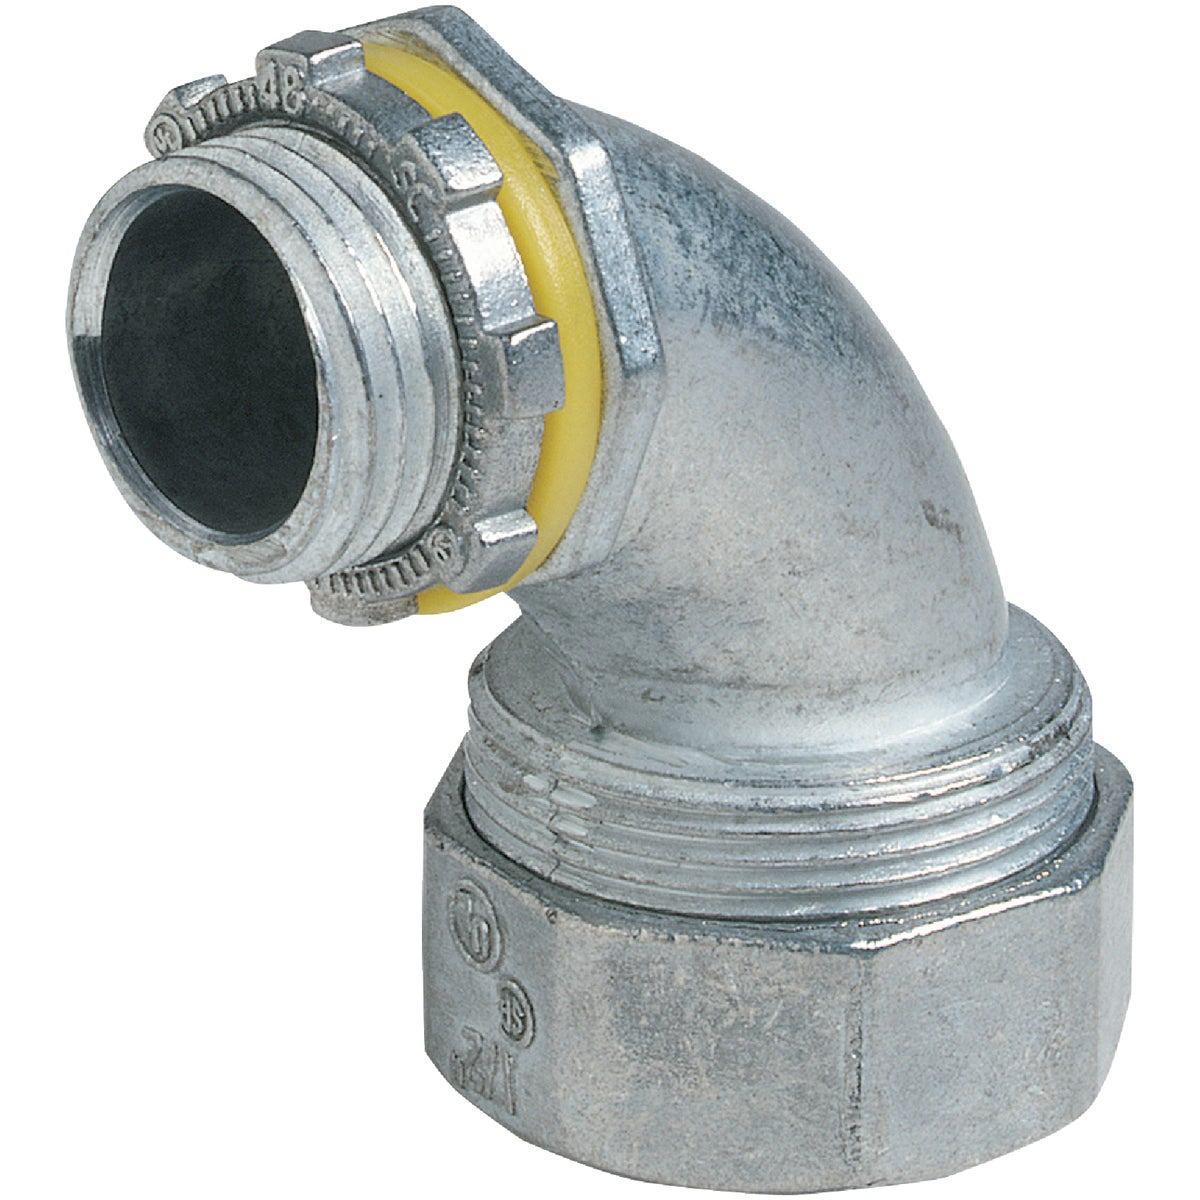 "3/4"" LIQTITE CONNECTOR - LT2921 by Thomas & Betts"